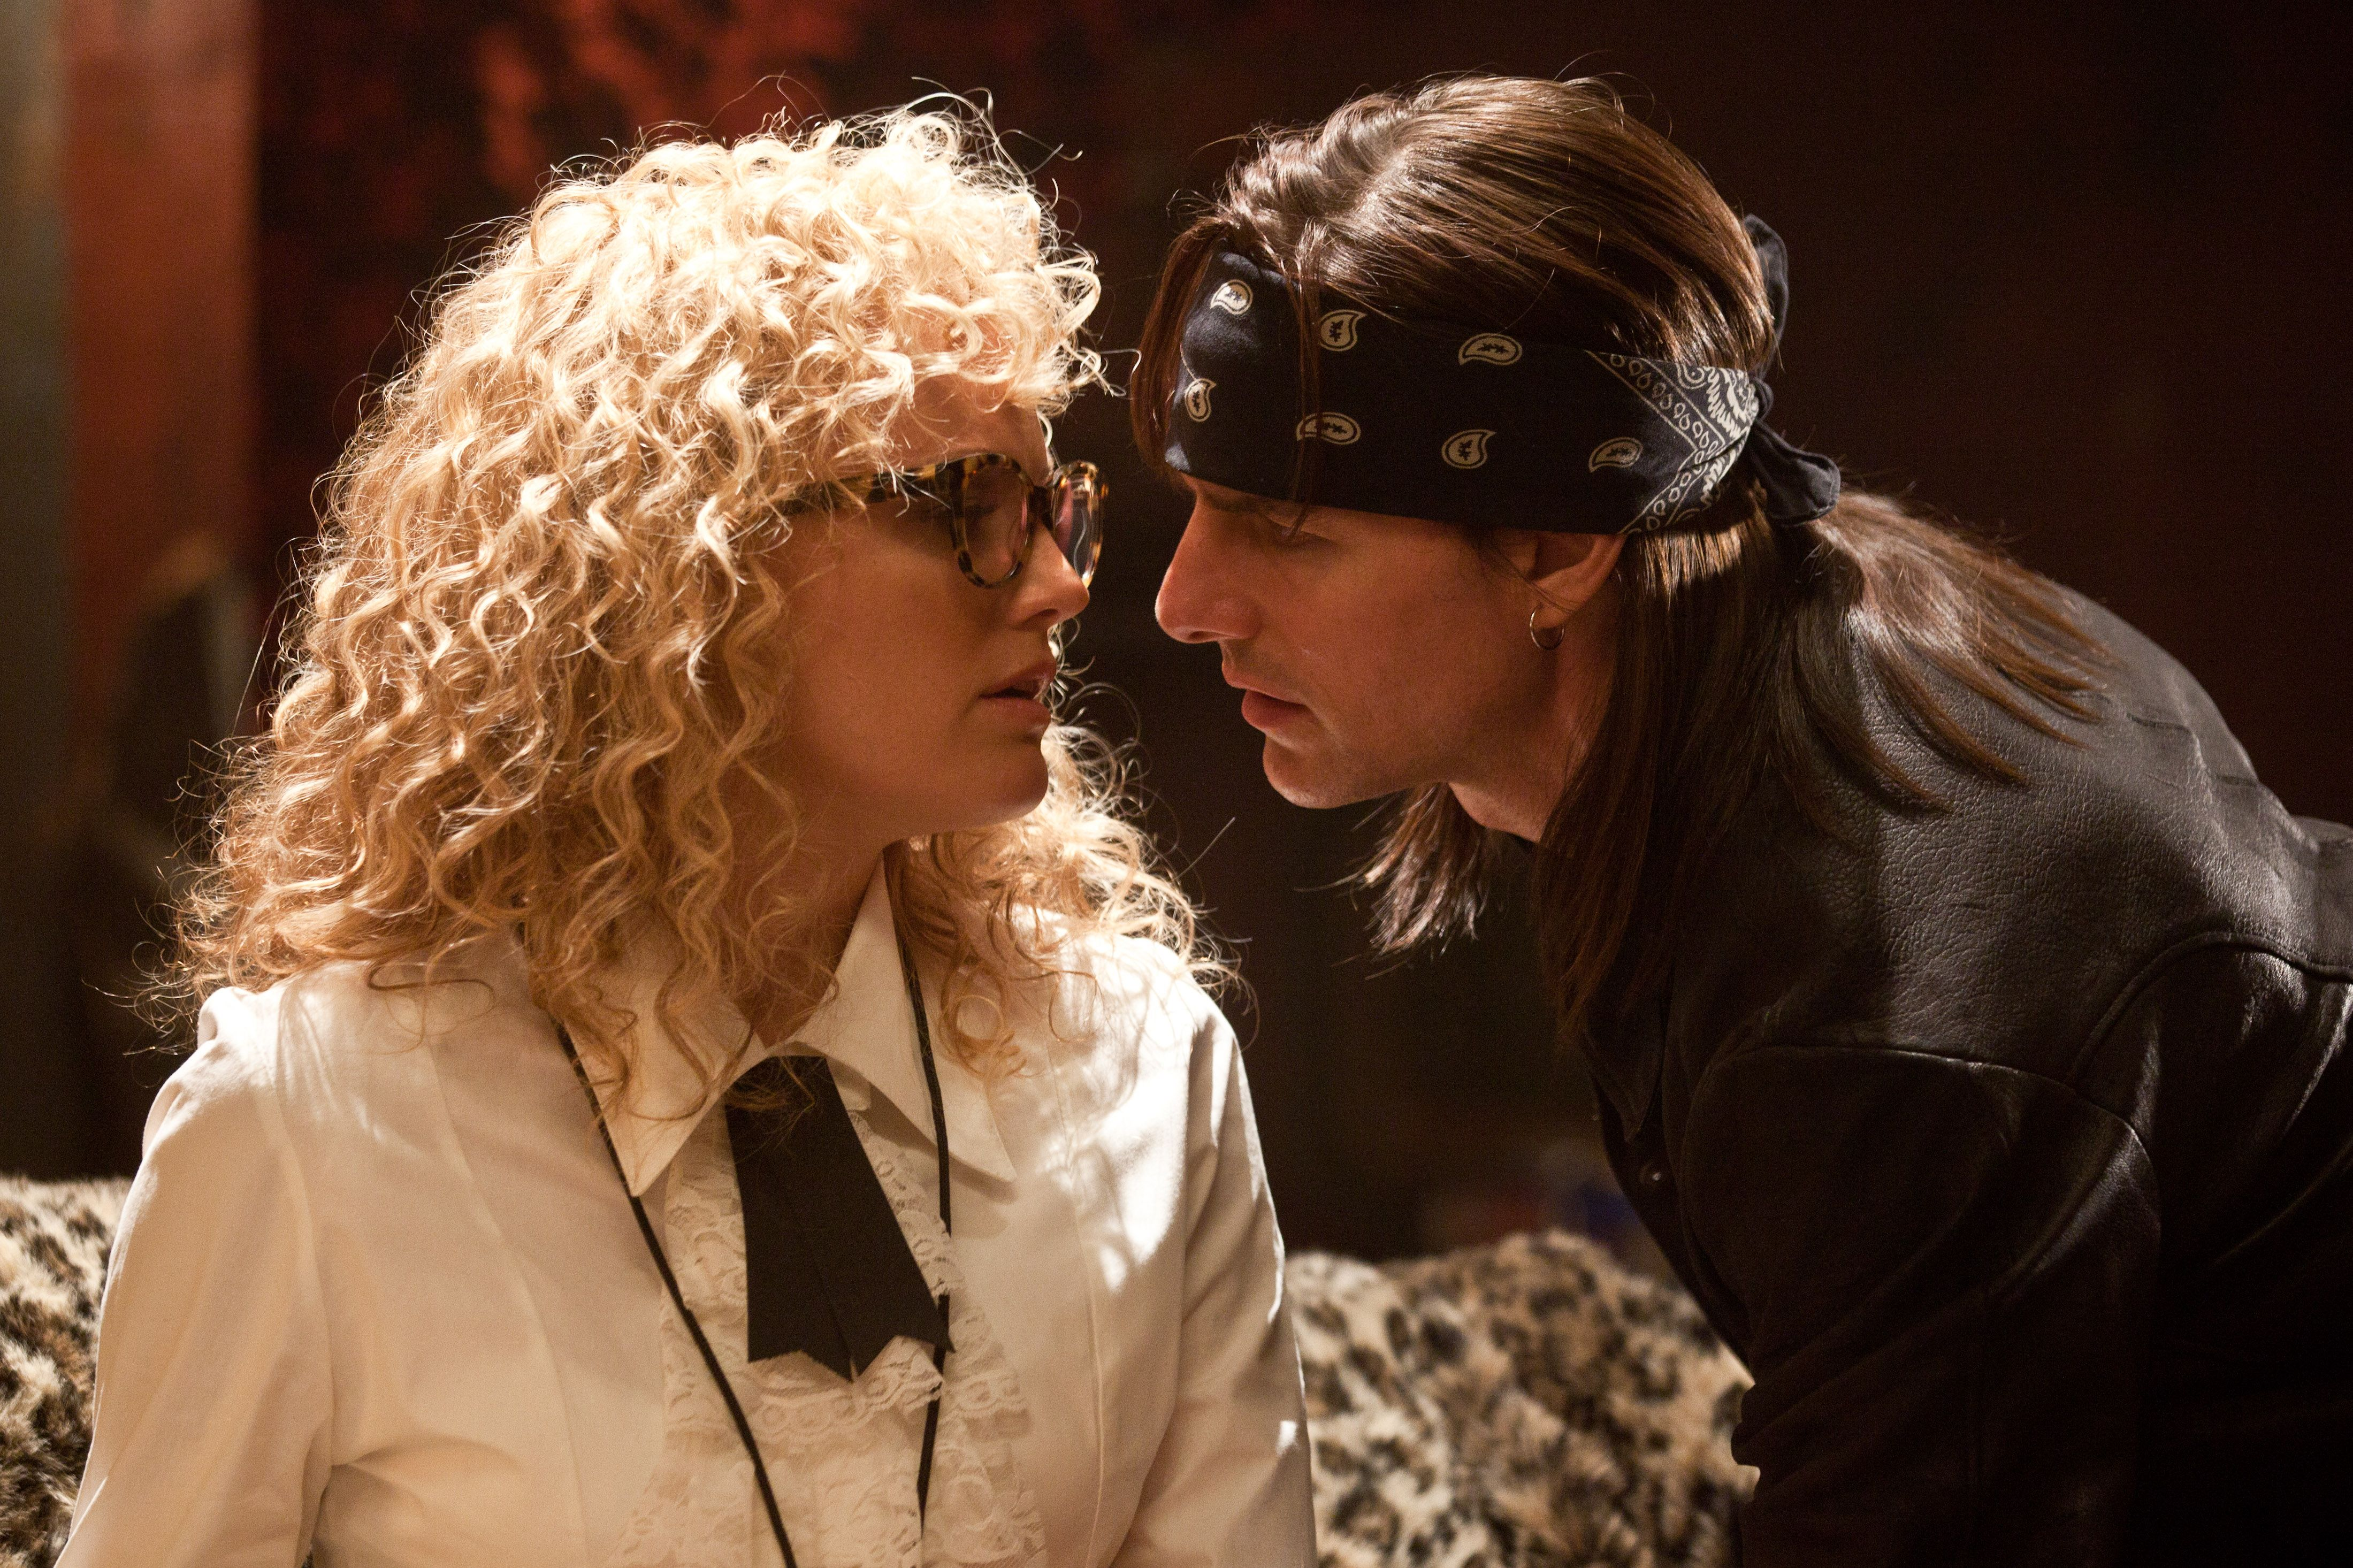 ROCK OF AGES Movie Images Featuring Tom Cruise | Collider Rock Of Ages Movie